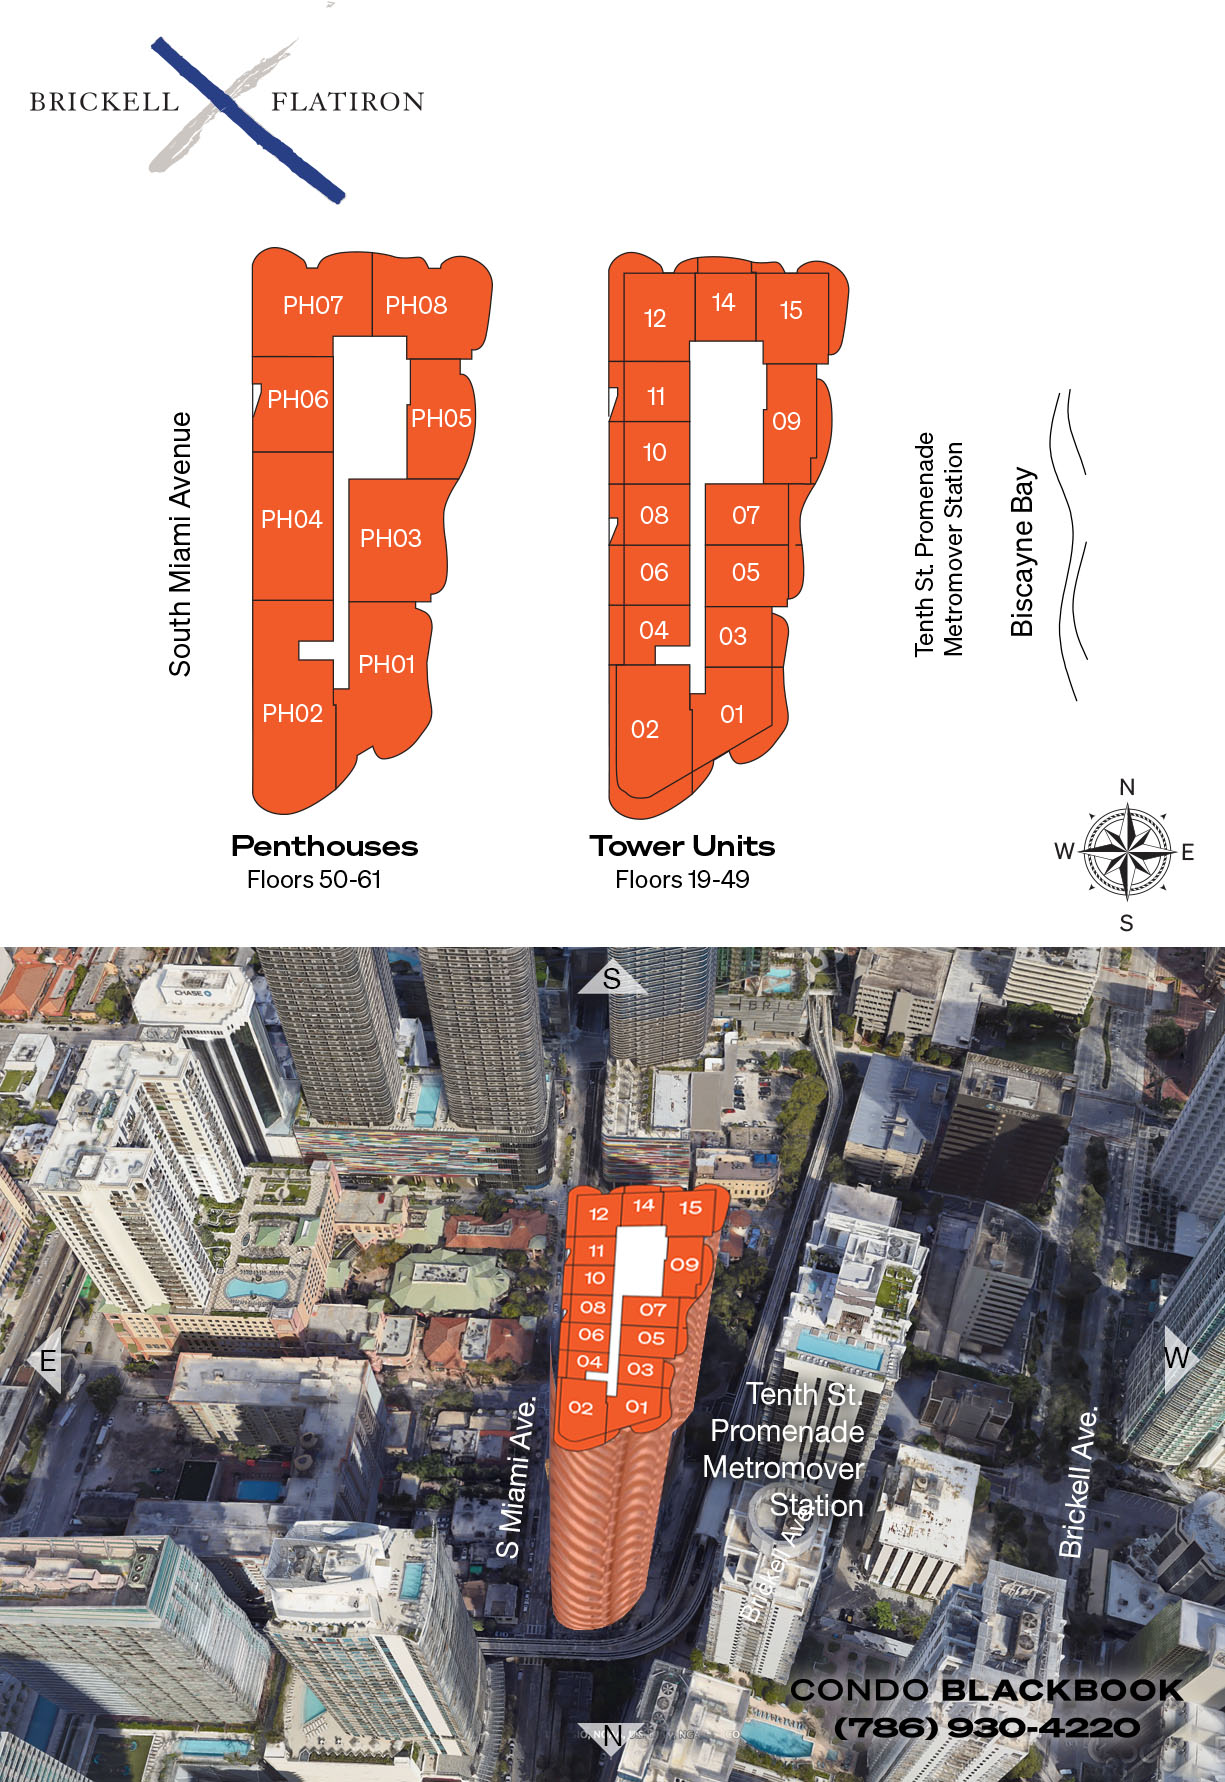 Brickell Flatiron floorplan and site plan